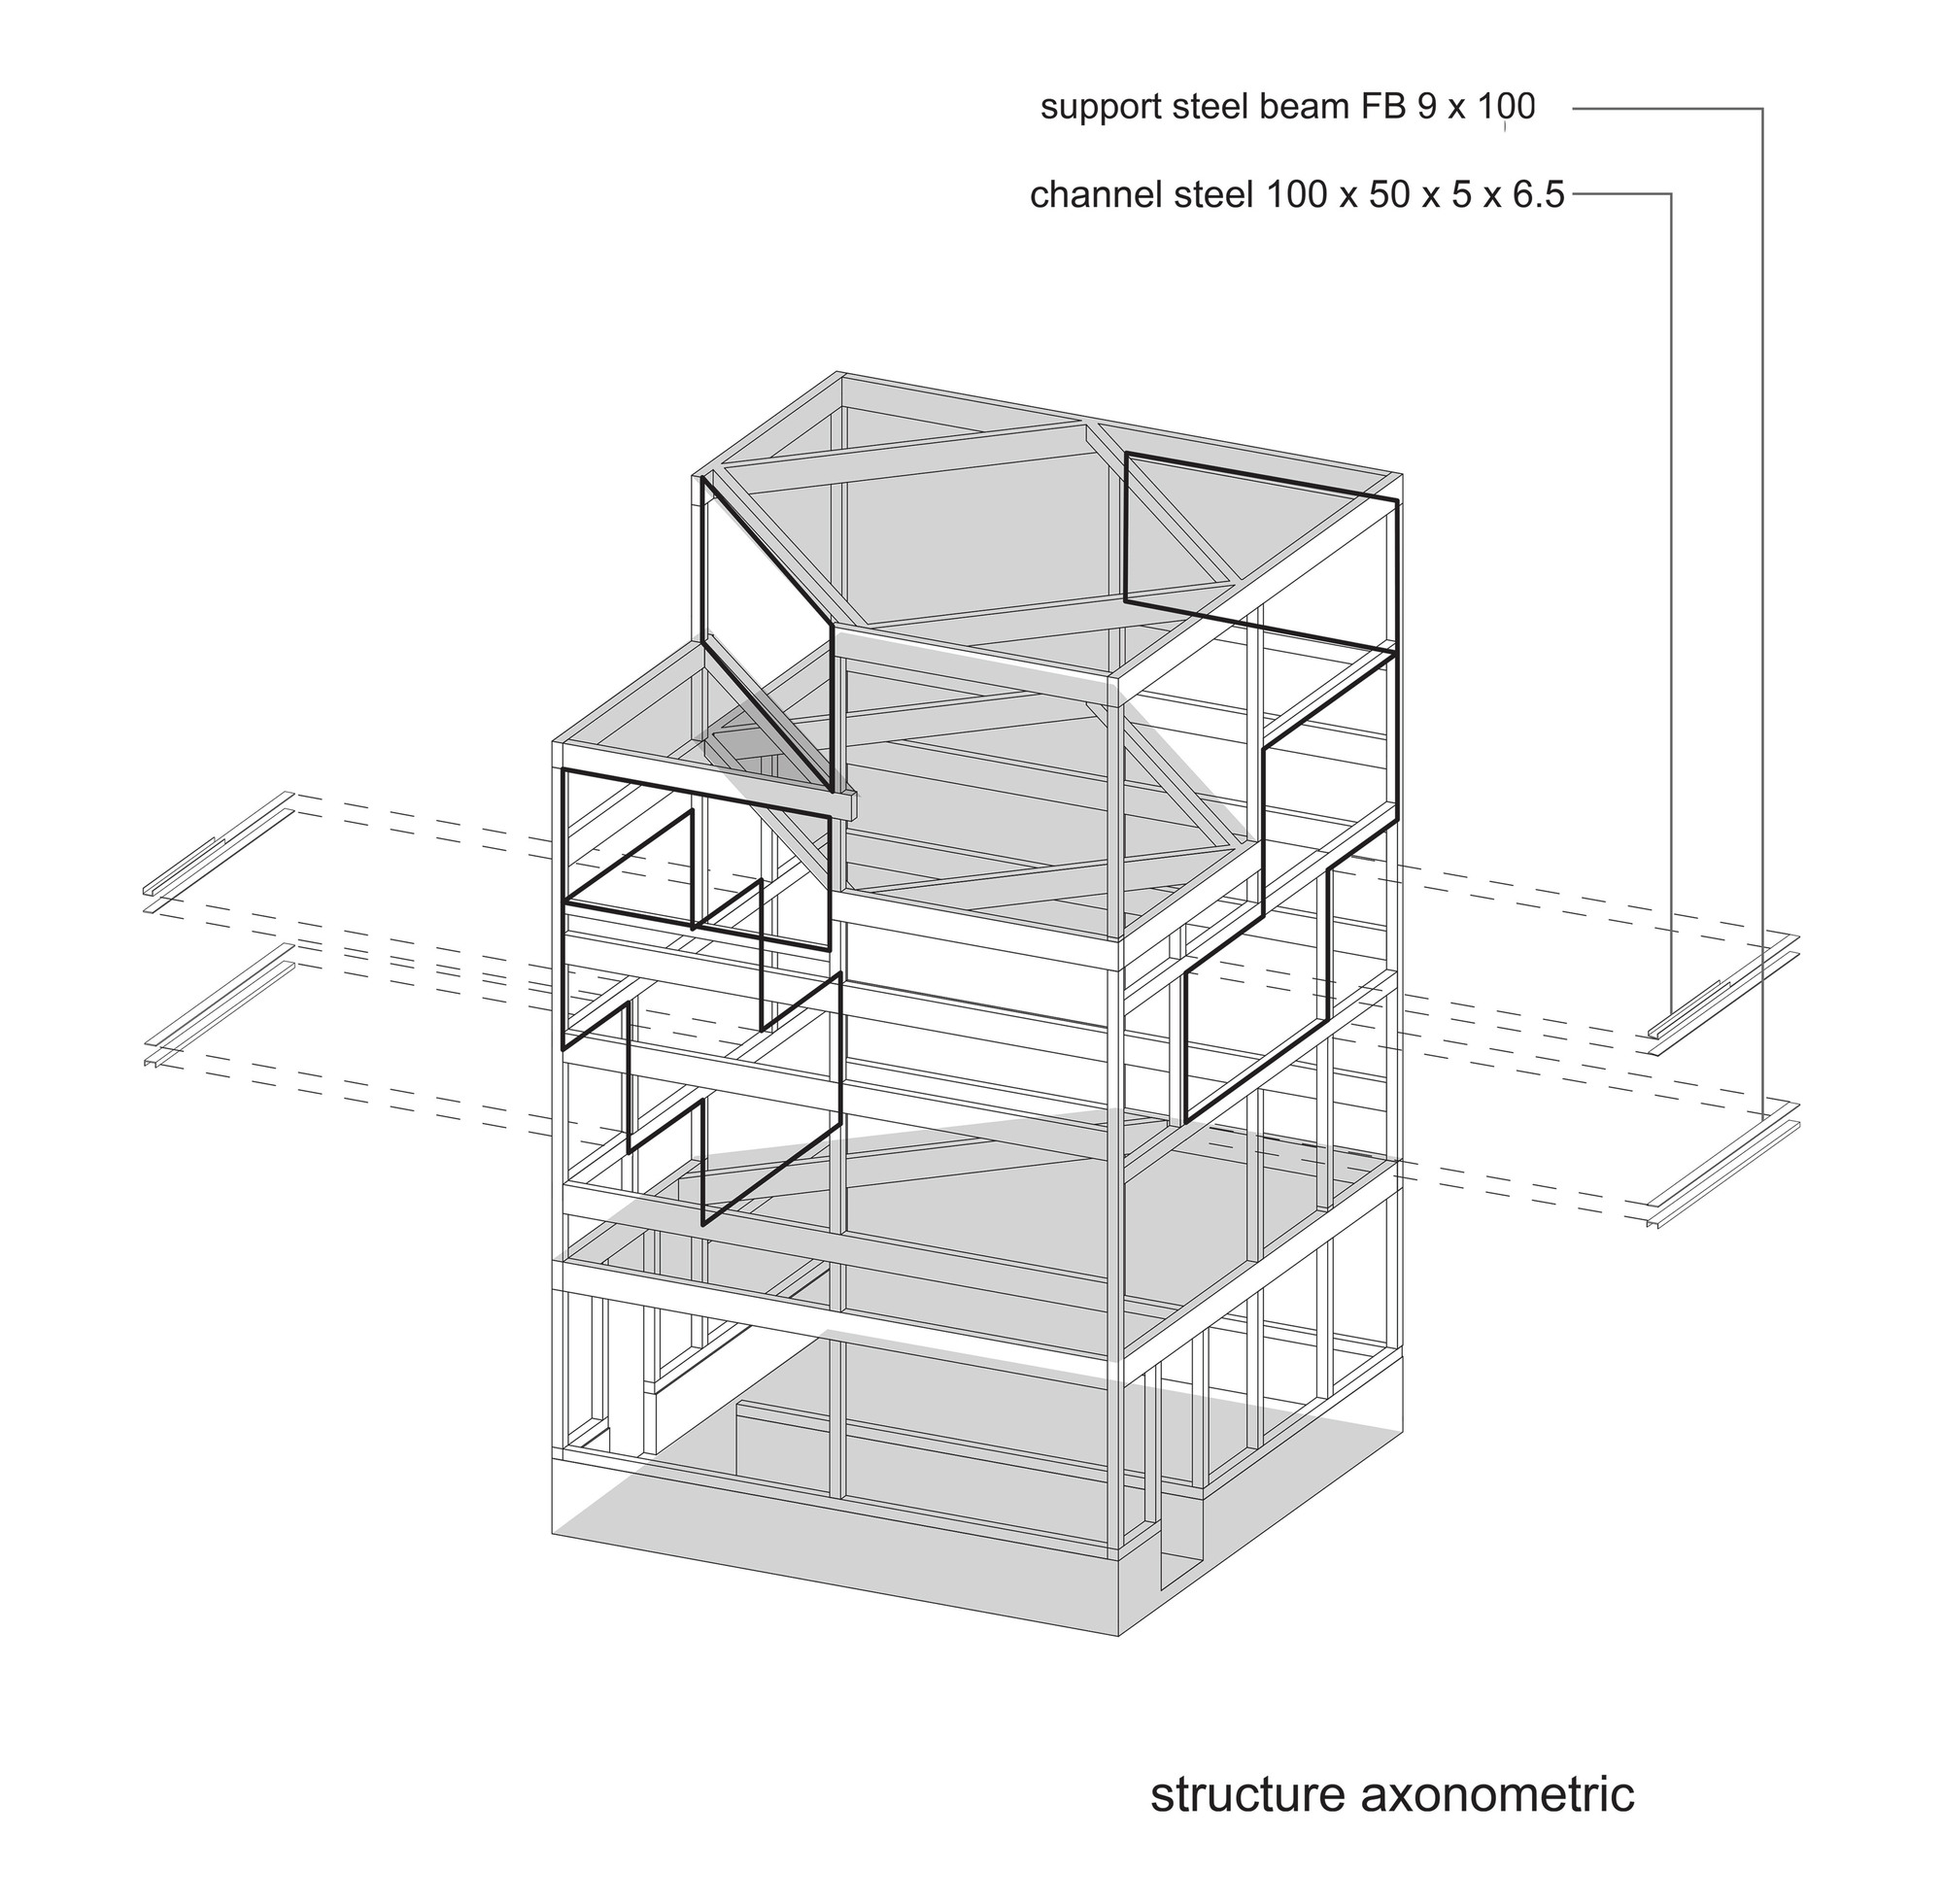 Home Window Diagram Another Blog About Wiring Types Of Electrical Hometips Gallery Spiral House Alphaville Architects 17 Rh Archdaily Com